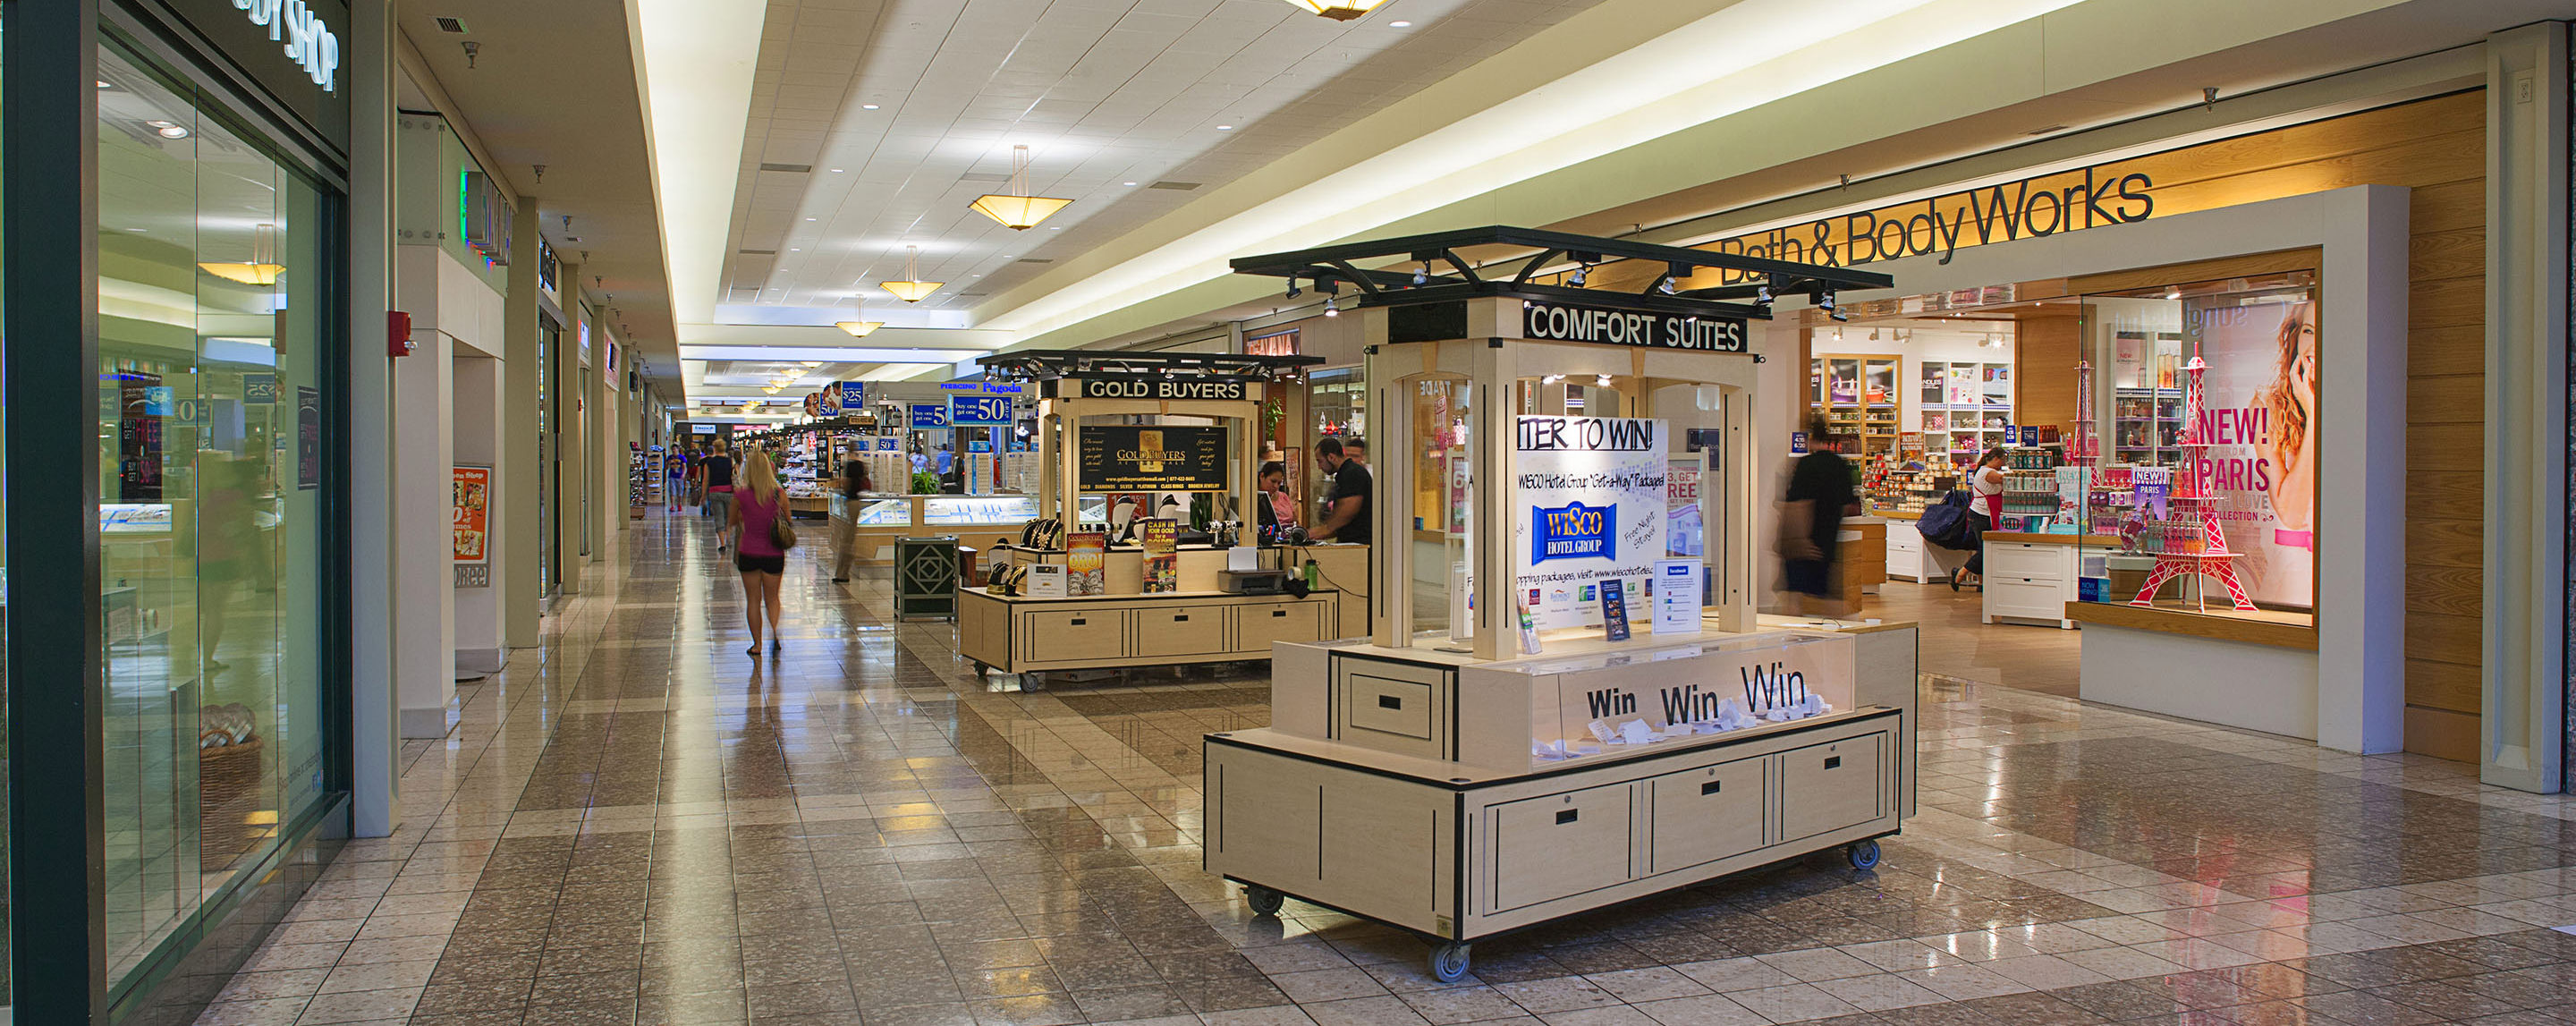 100 For Sale In Appleton Wisconsin Retail Space For Lease In Appleton Wi Fox River Mall Ggp